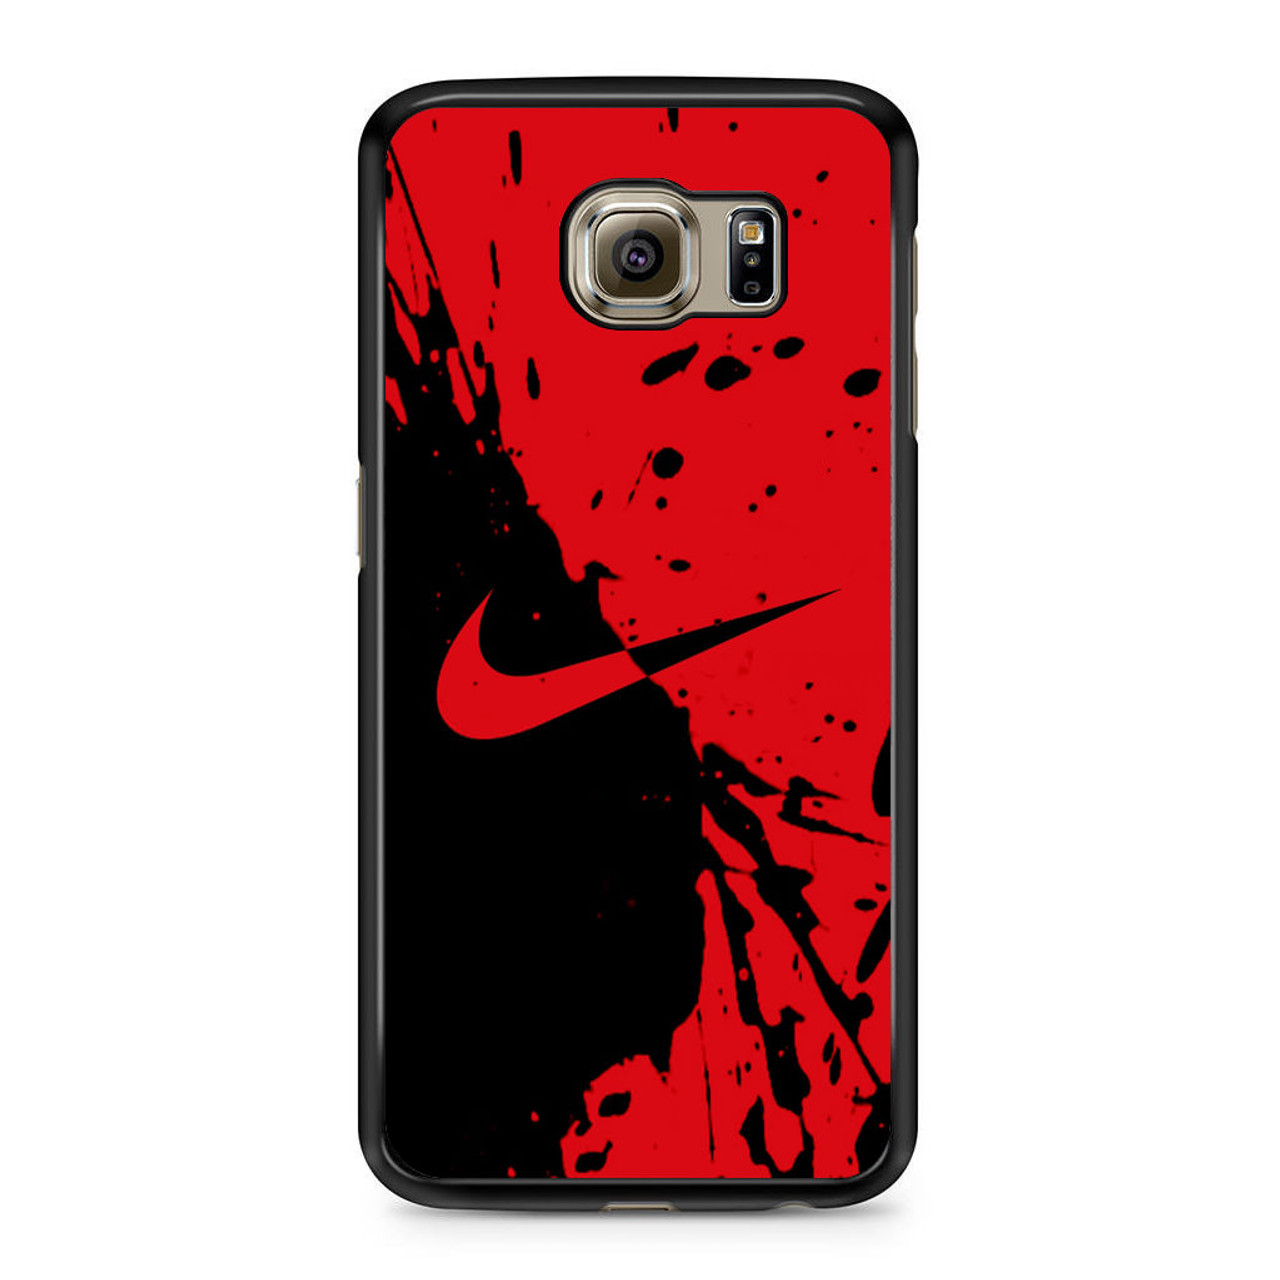 premium selection f1790 eec6c Nike Red and Black Samsung Galaxy S6 Case